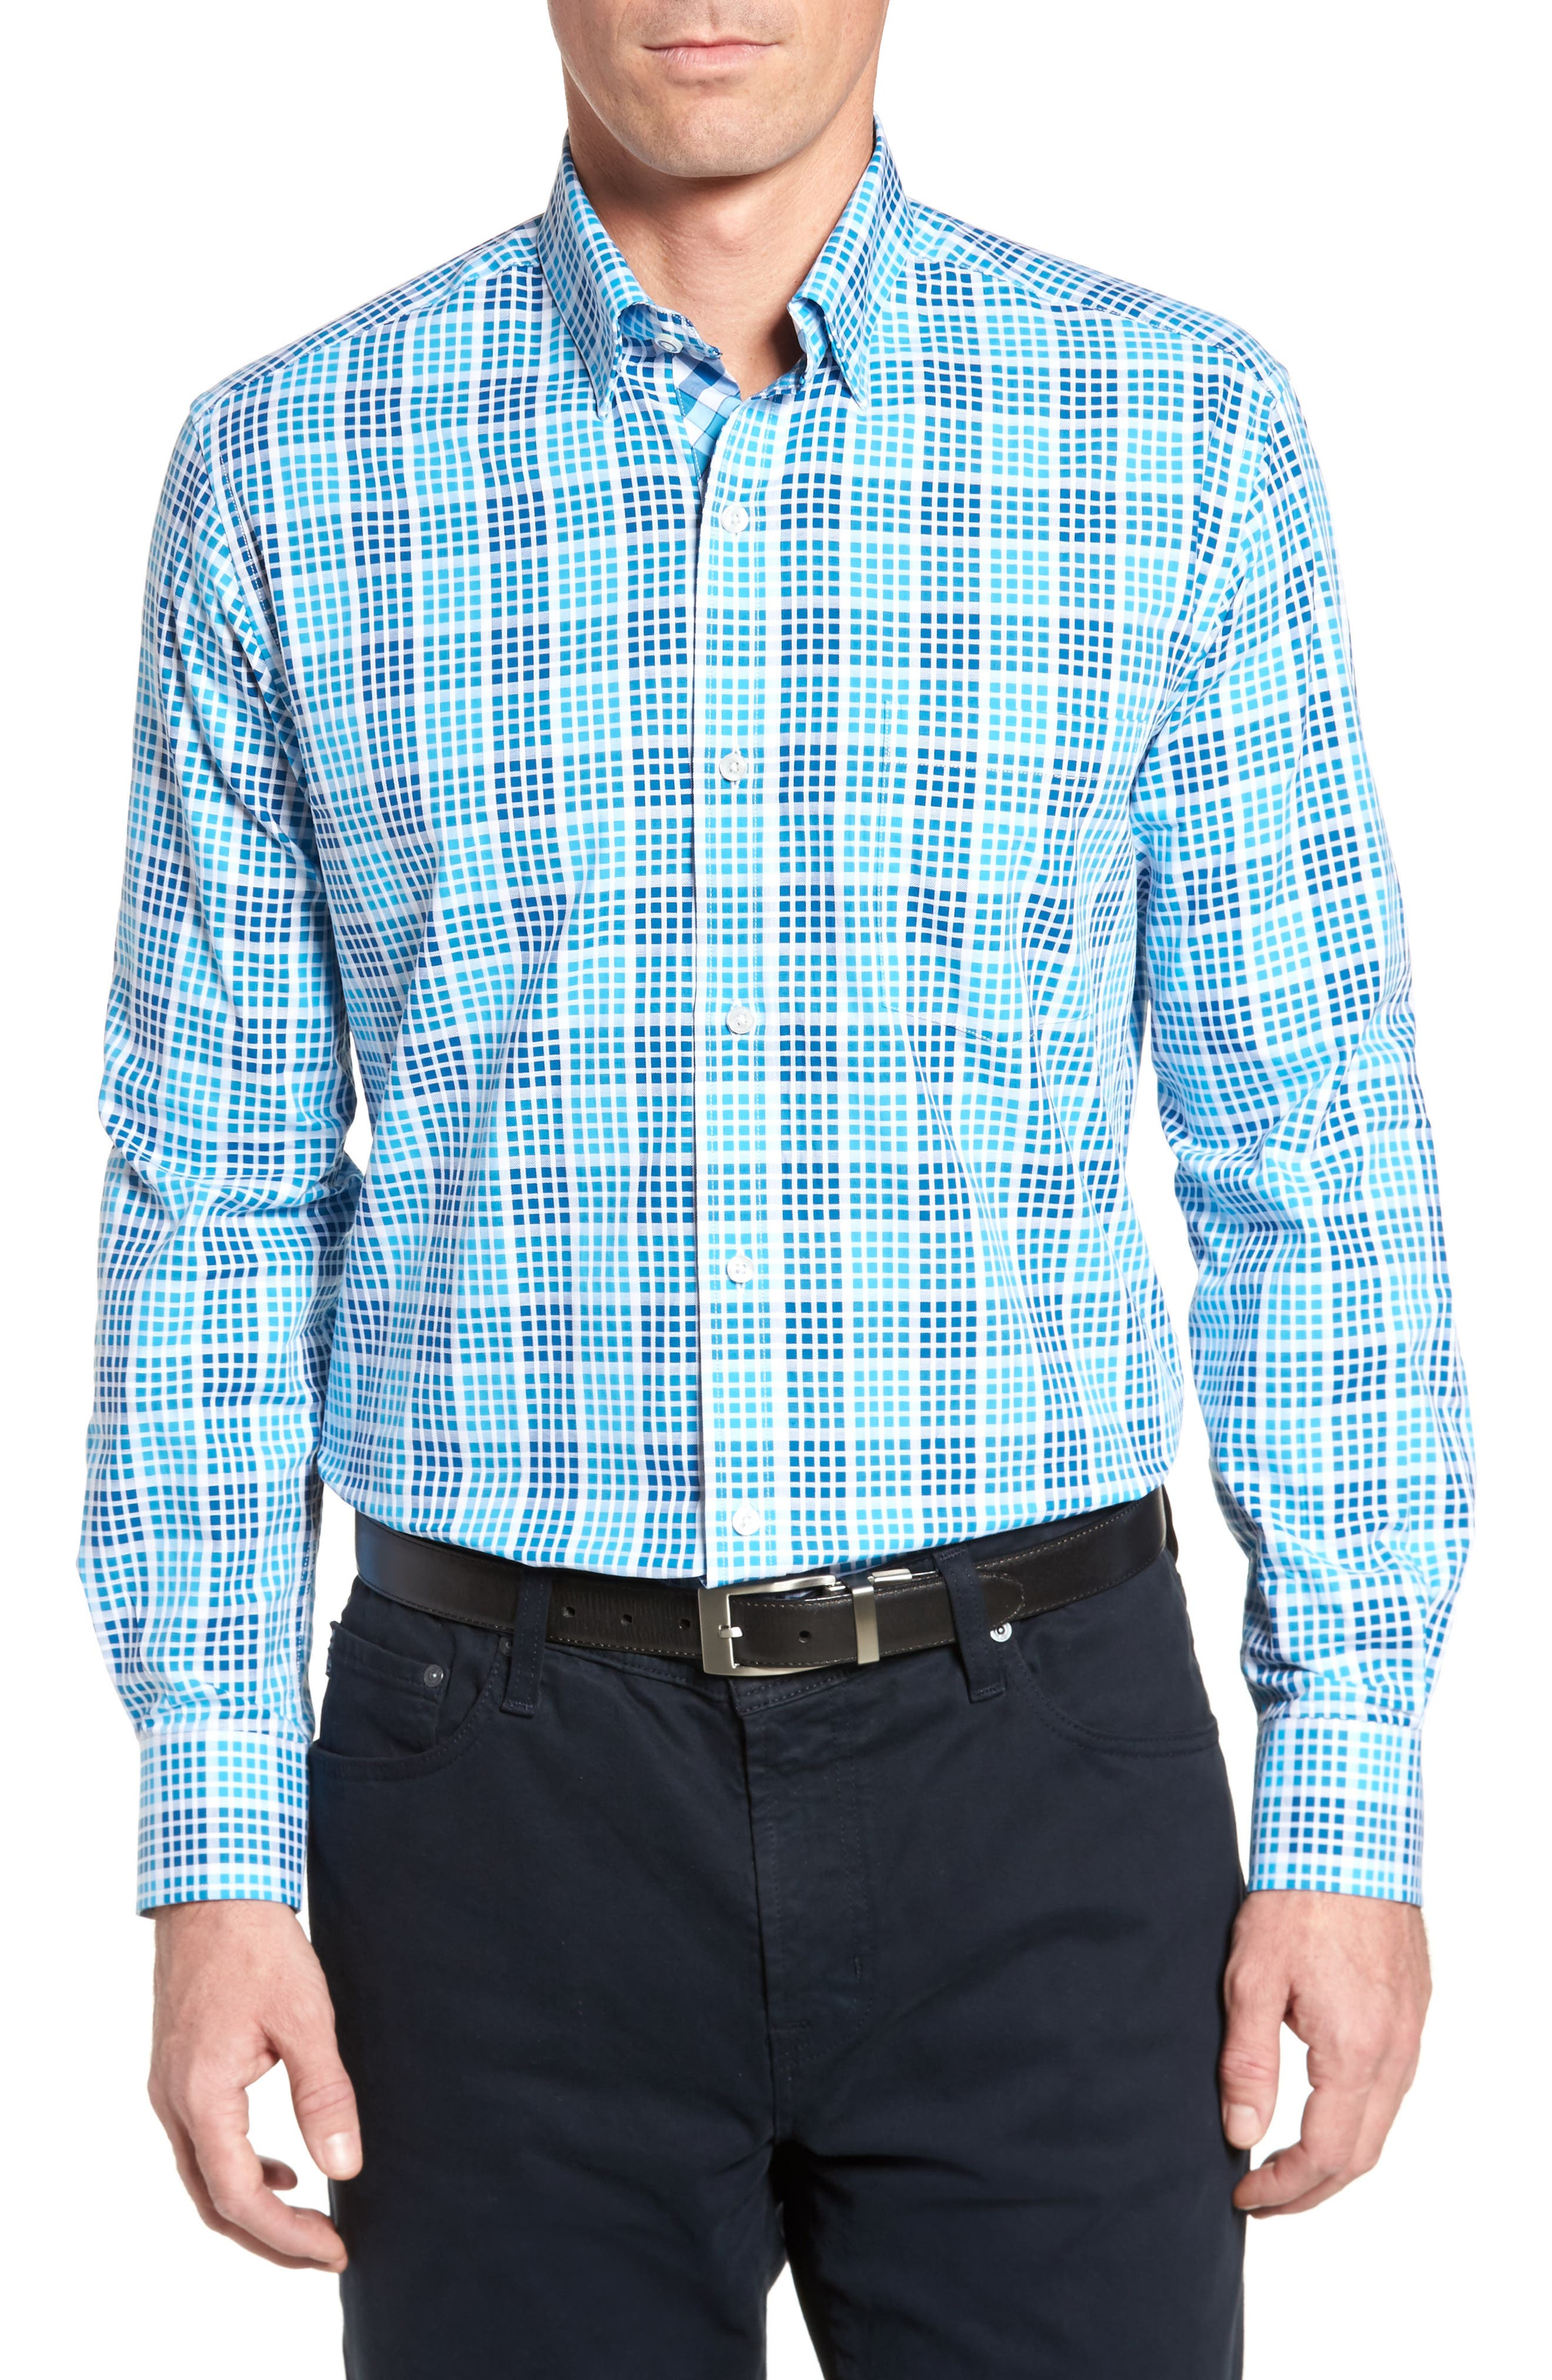 Alternate Image 1 Selected - TailorByrd New Orleans Sport Shirt